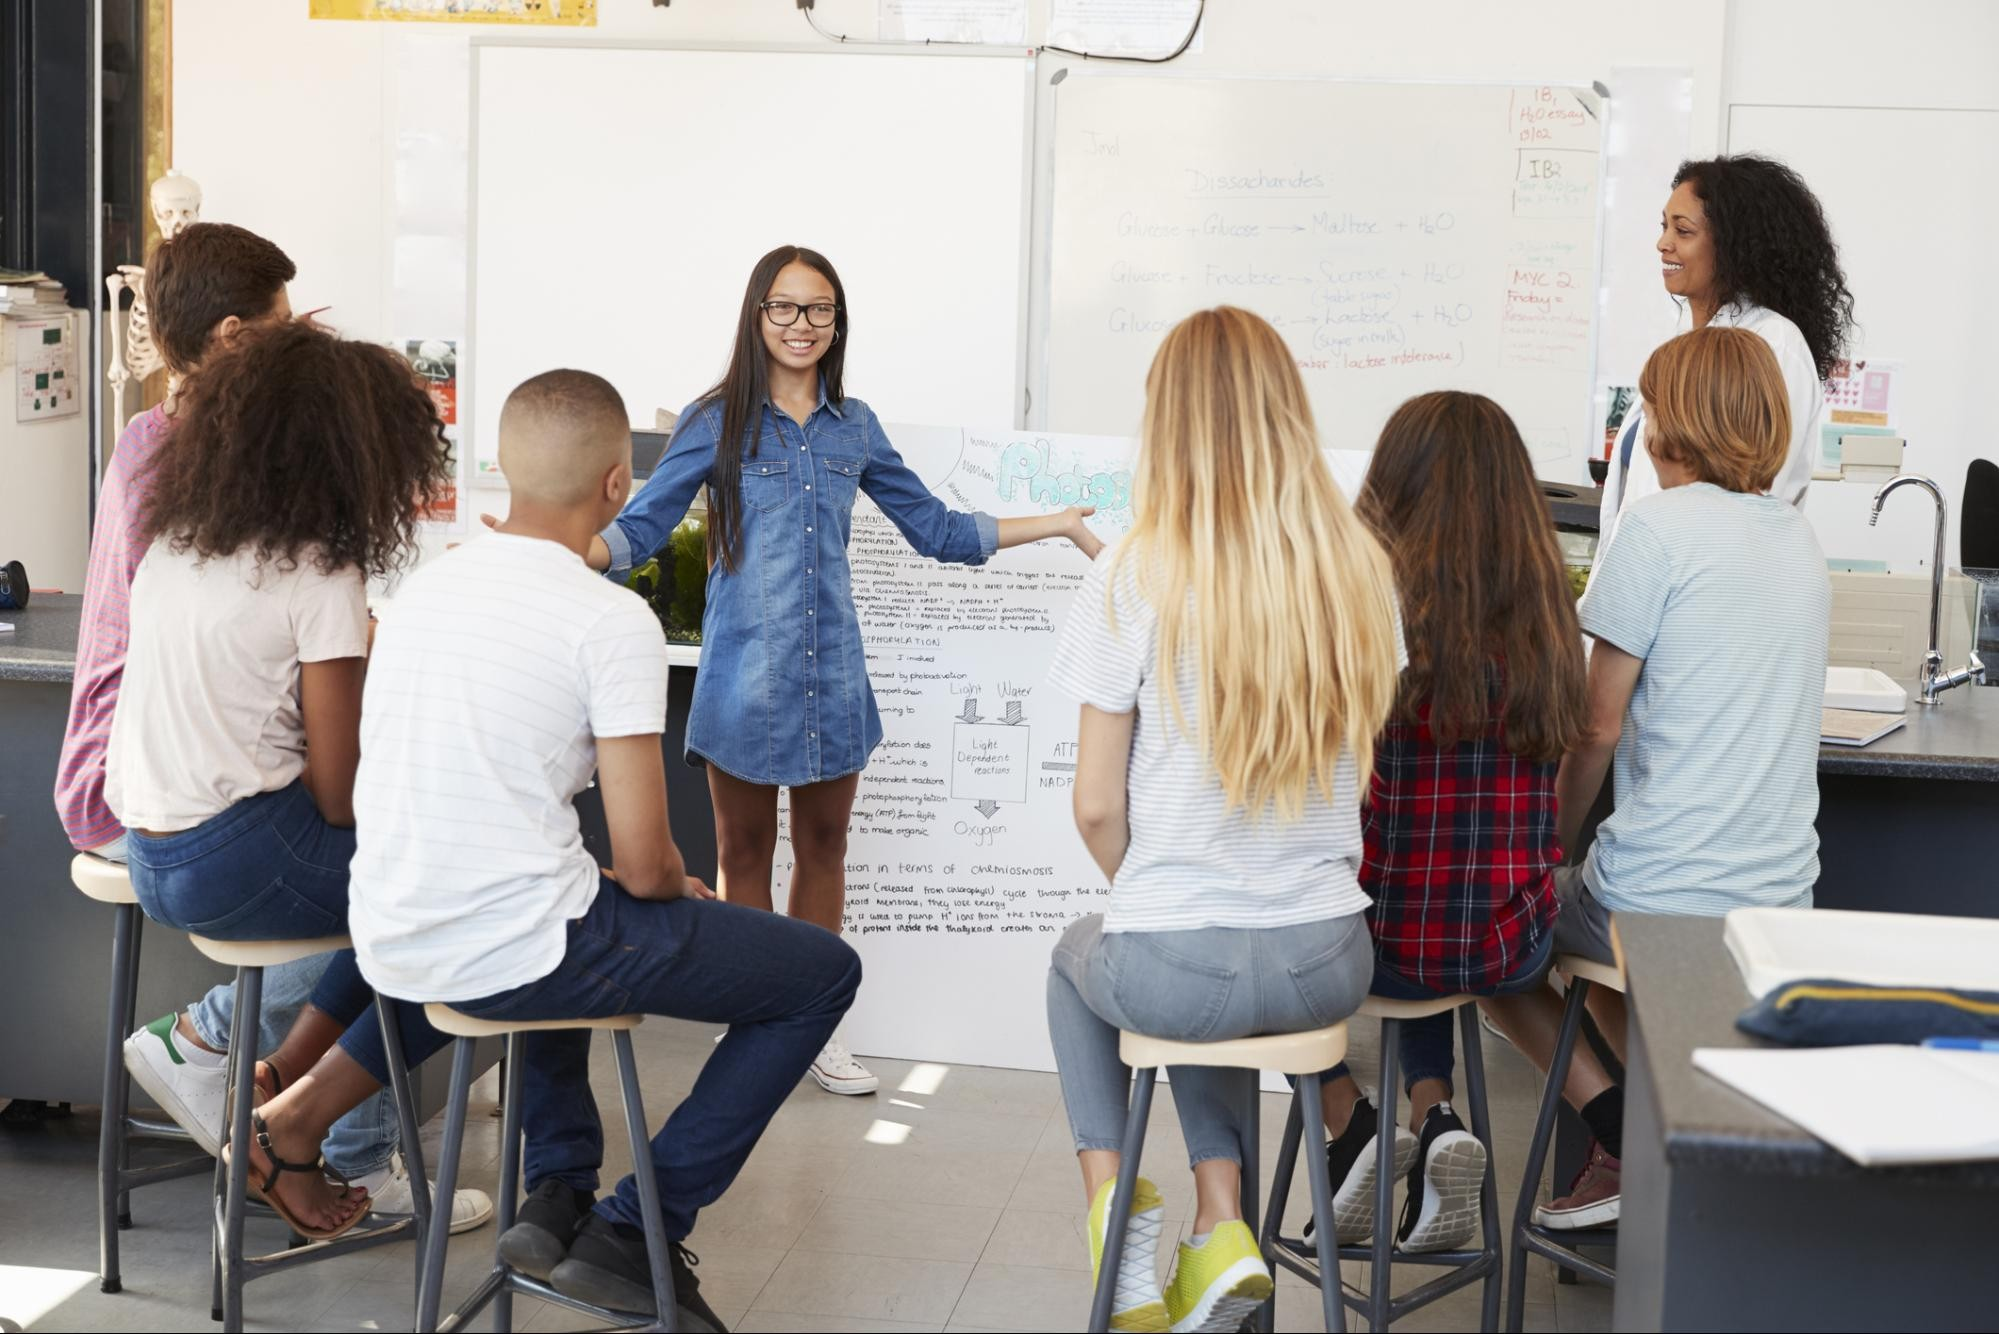 A high school student stands in front of her classmates and presents a project.